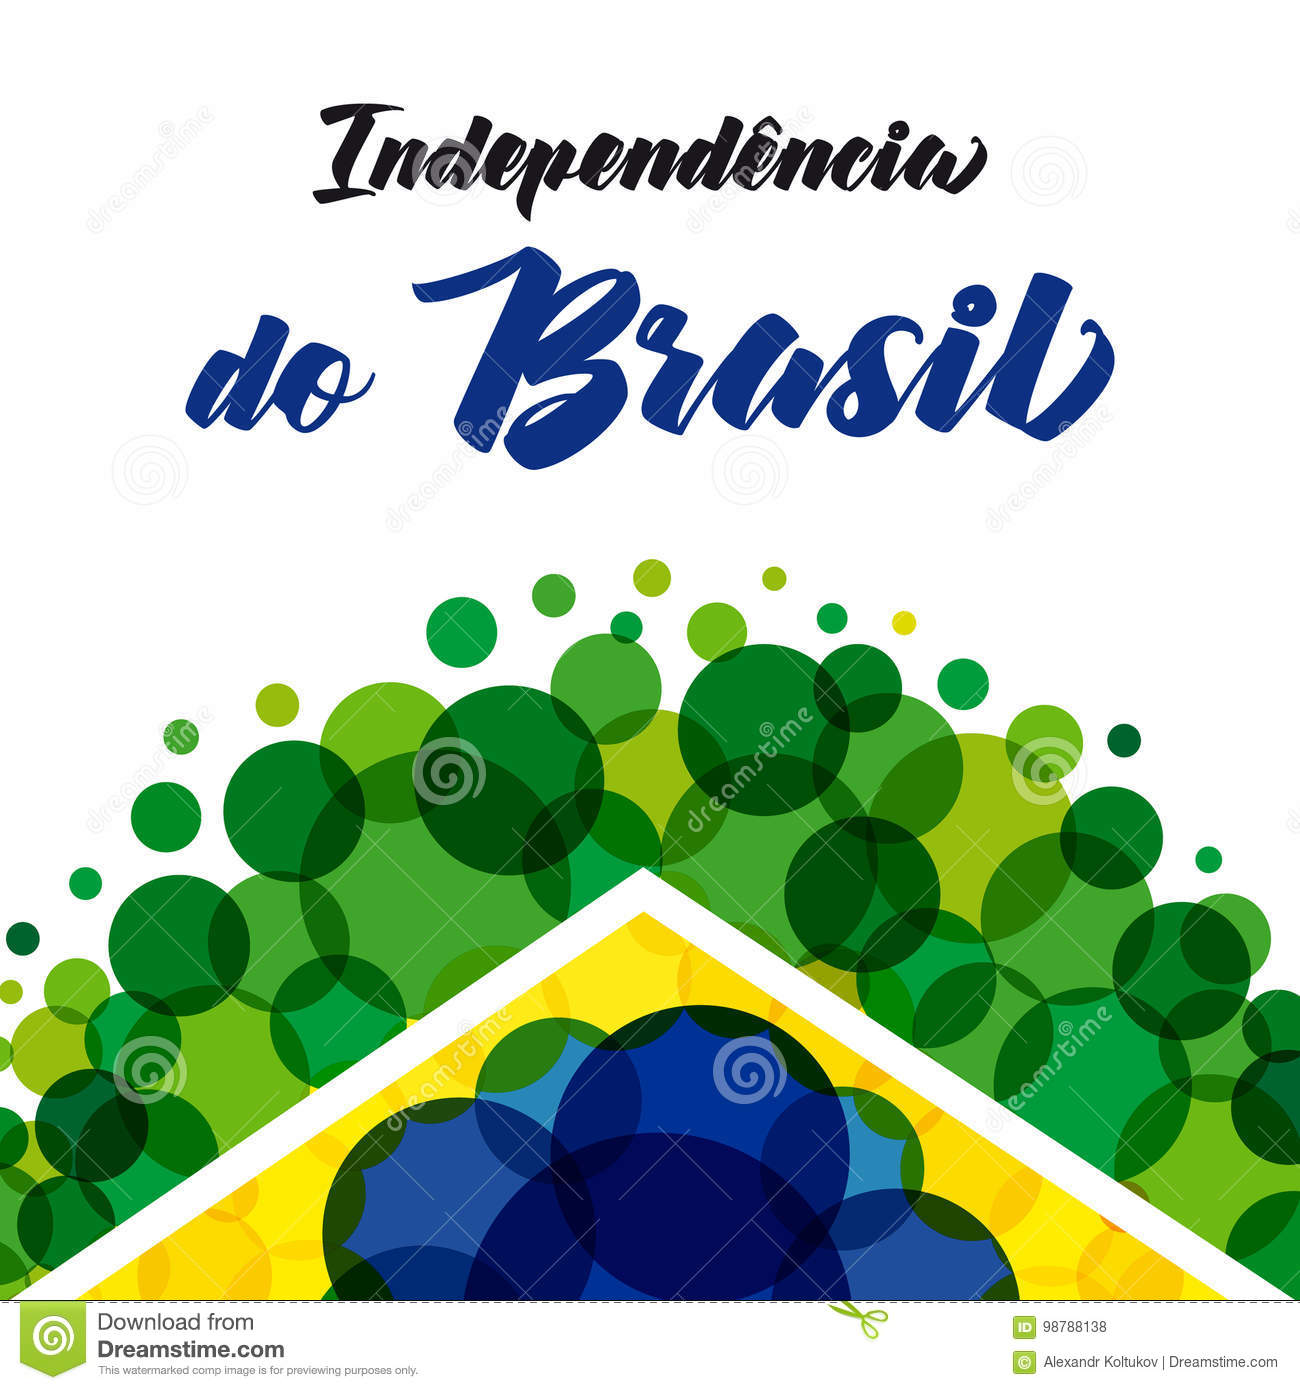 Independence Day Of Brazil Colored Stock Vector Illustration Of